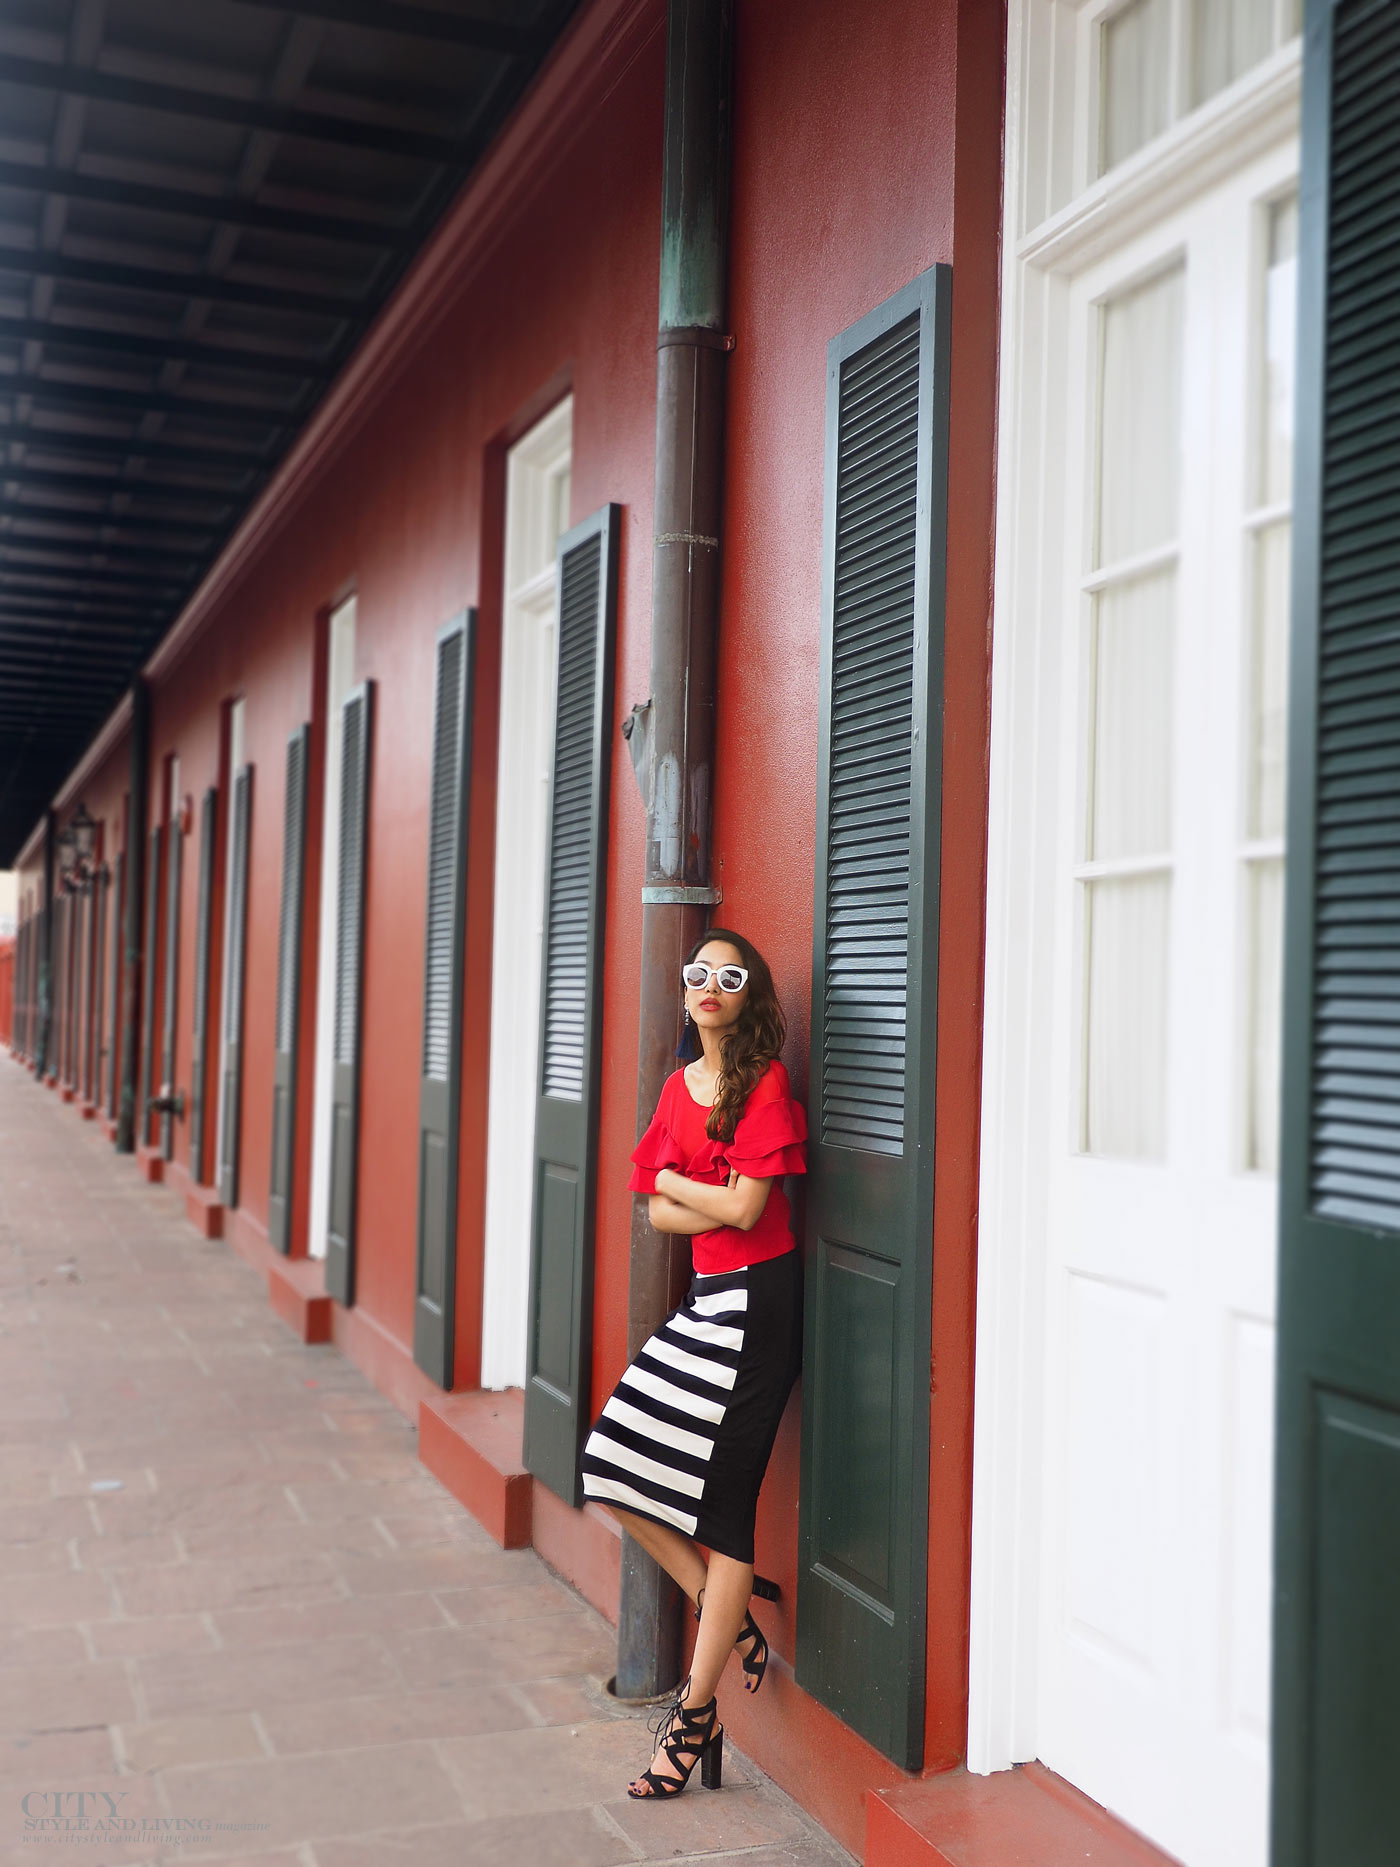 City style and living magazine The Editors Notebook style fashion blogger Shivana Maharaj french quarter new orleans ruffle top and striped skirt